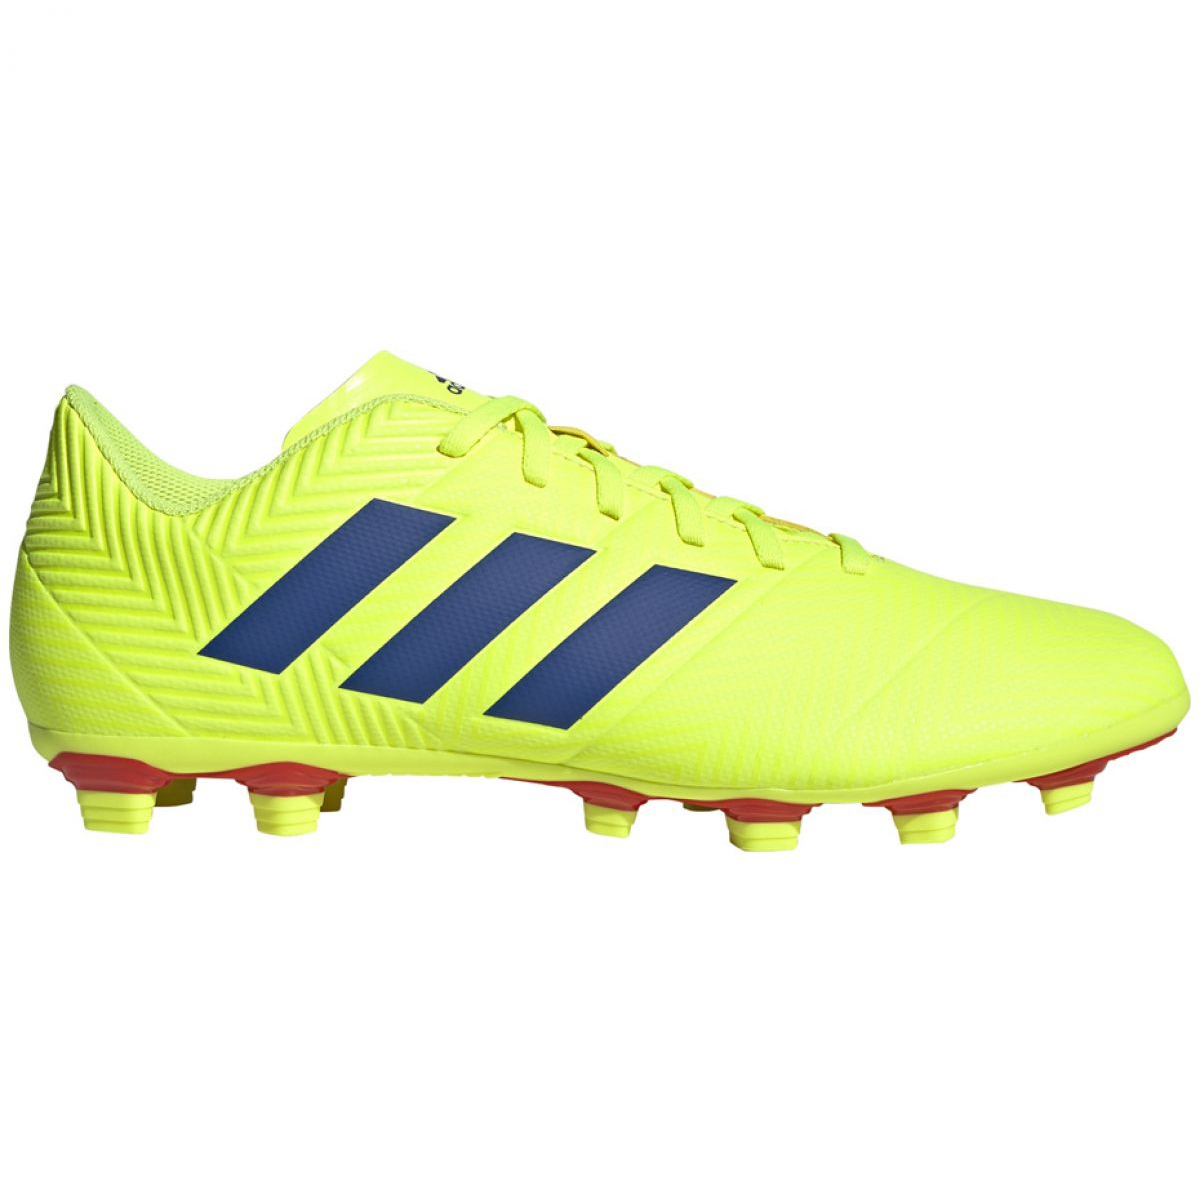 Football chaussures adidas Nemeziz 18.4 FxG M BB9440